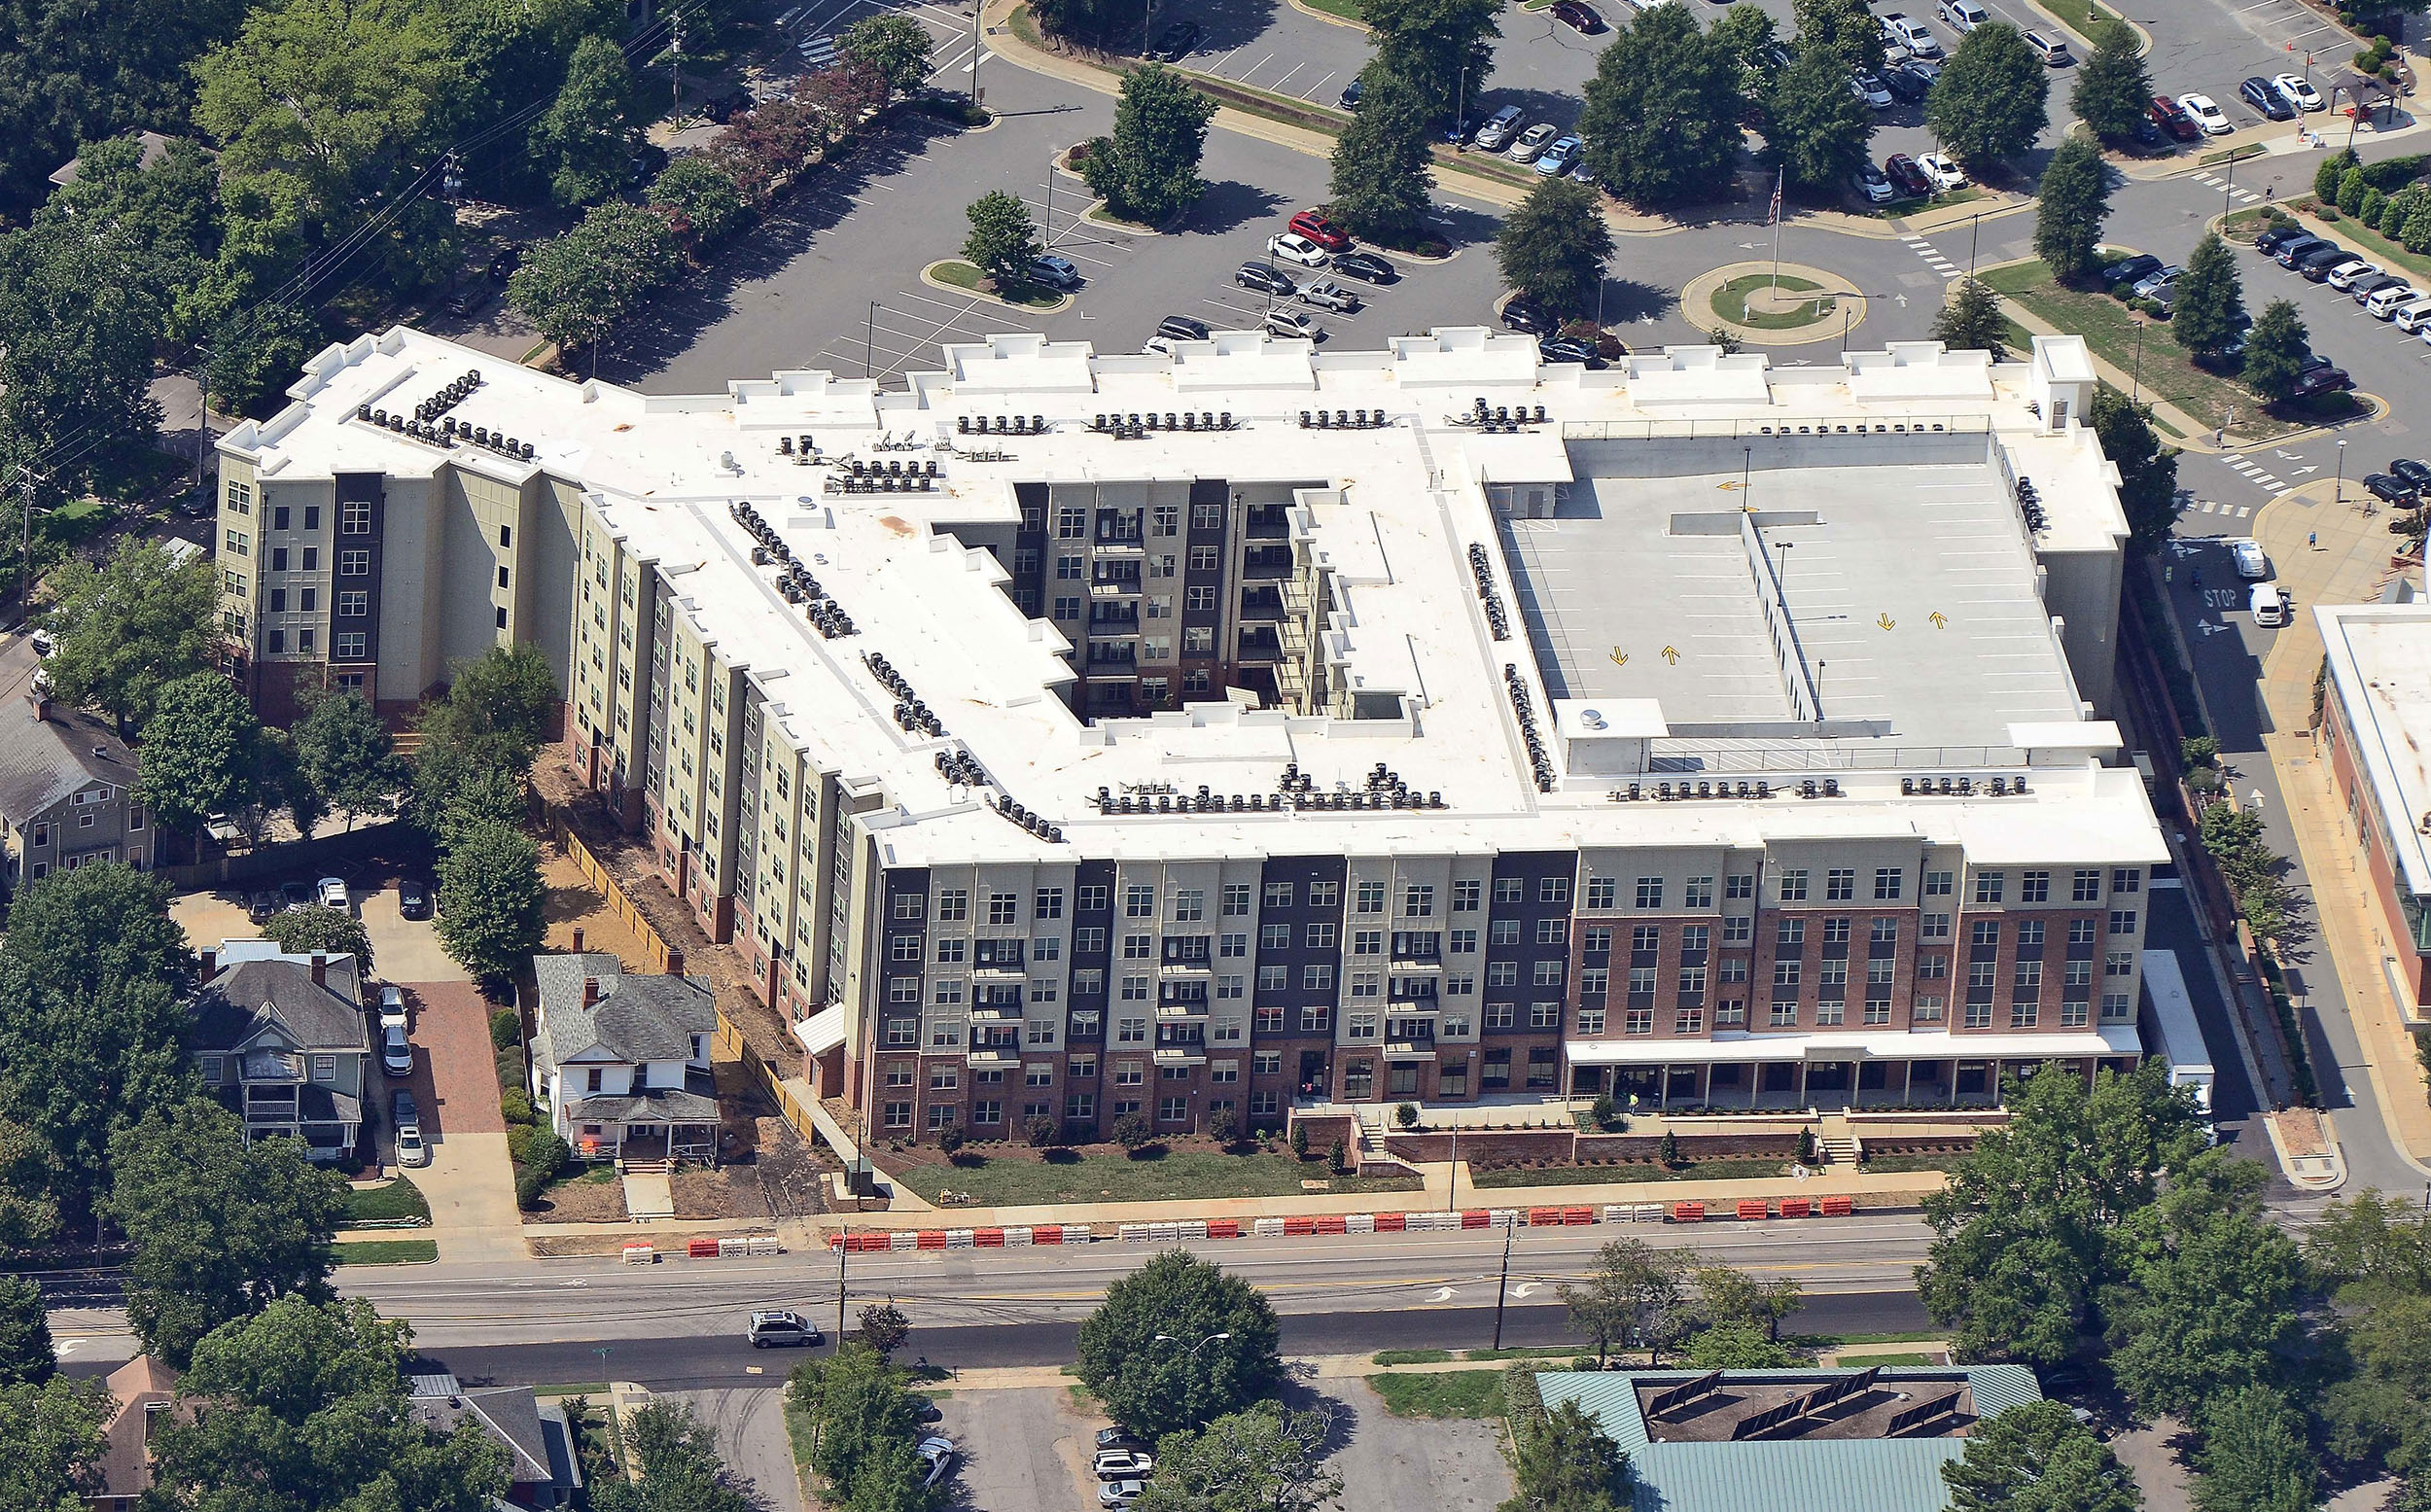 Luxury student housing apartments with inner courtyard aerial view